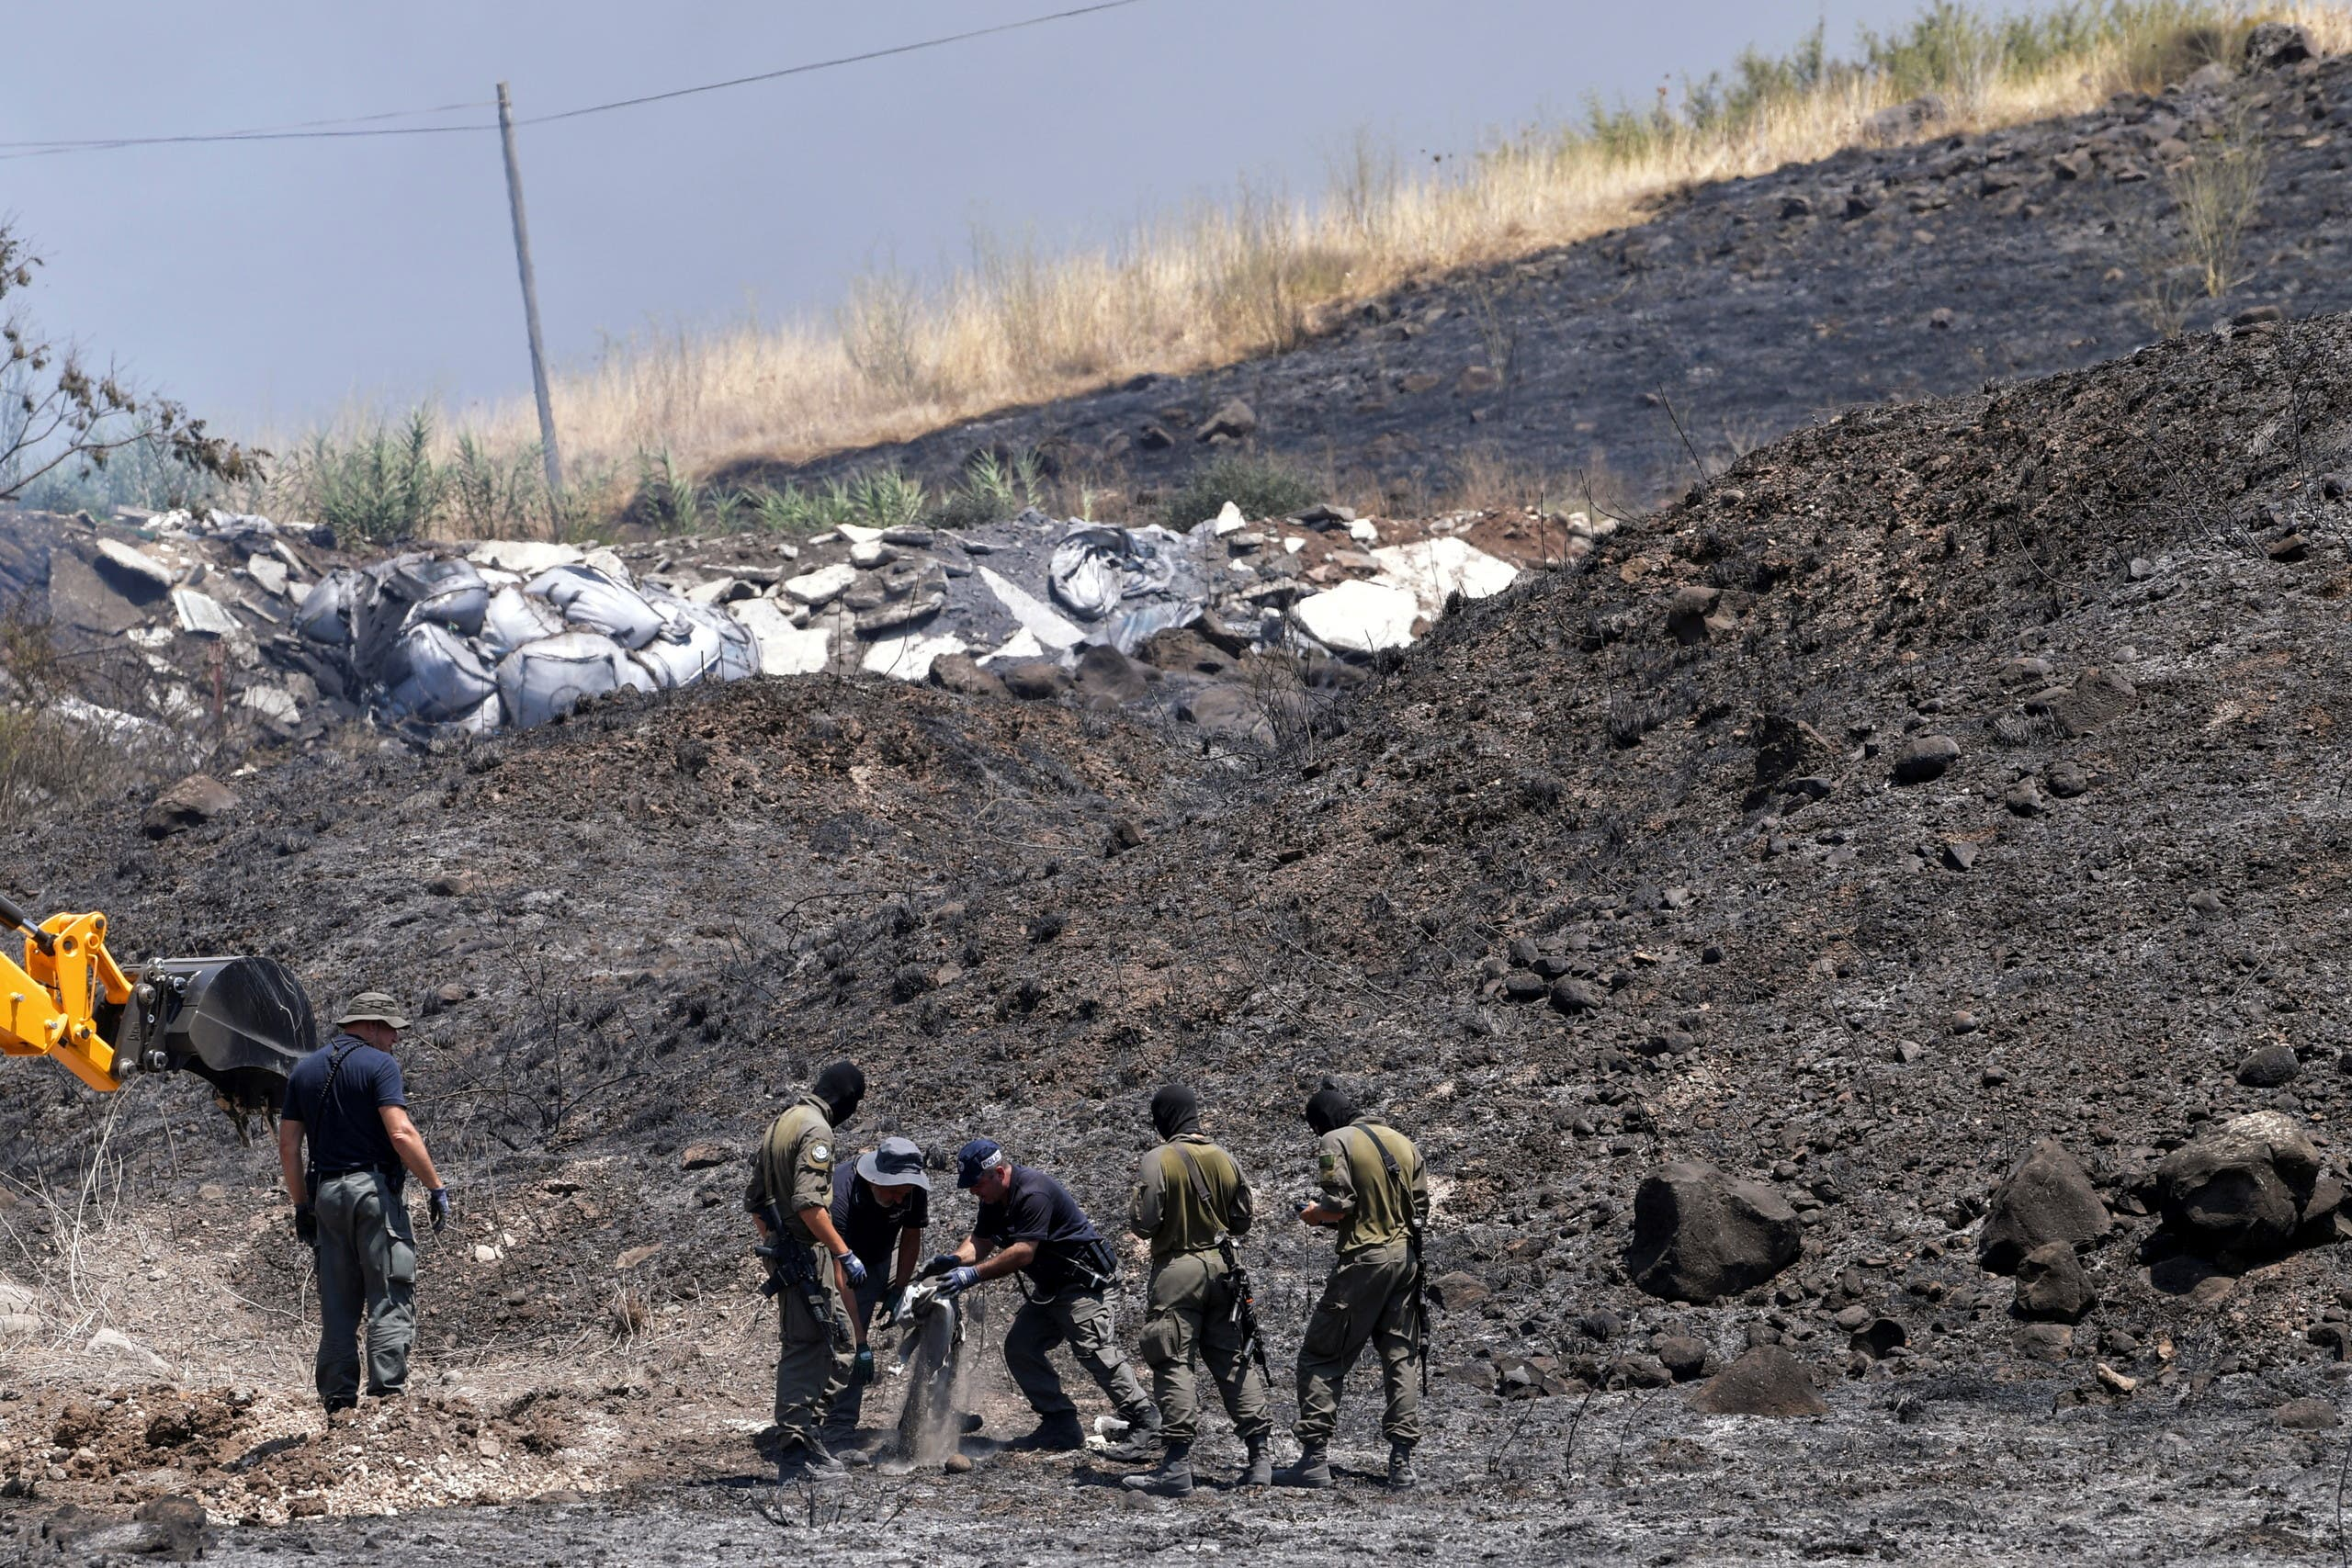 An Israeli bombs expert, accompanied by two soldiers, inspects the remains of a rocket that was fired at Israel from Lebanon, in Kiryat Shmona, Israel August 4, 2021. (Reuters)